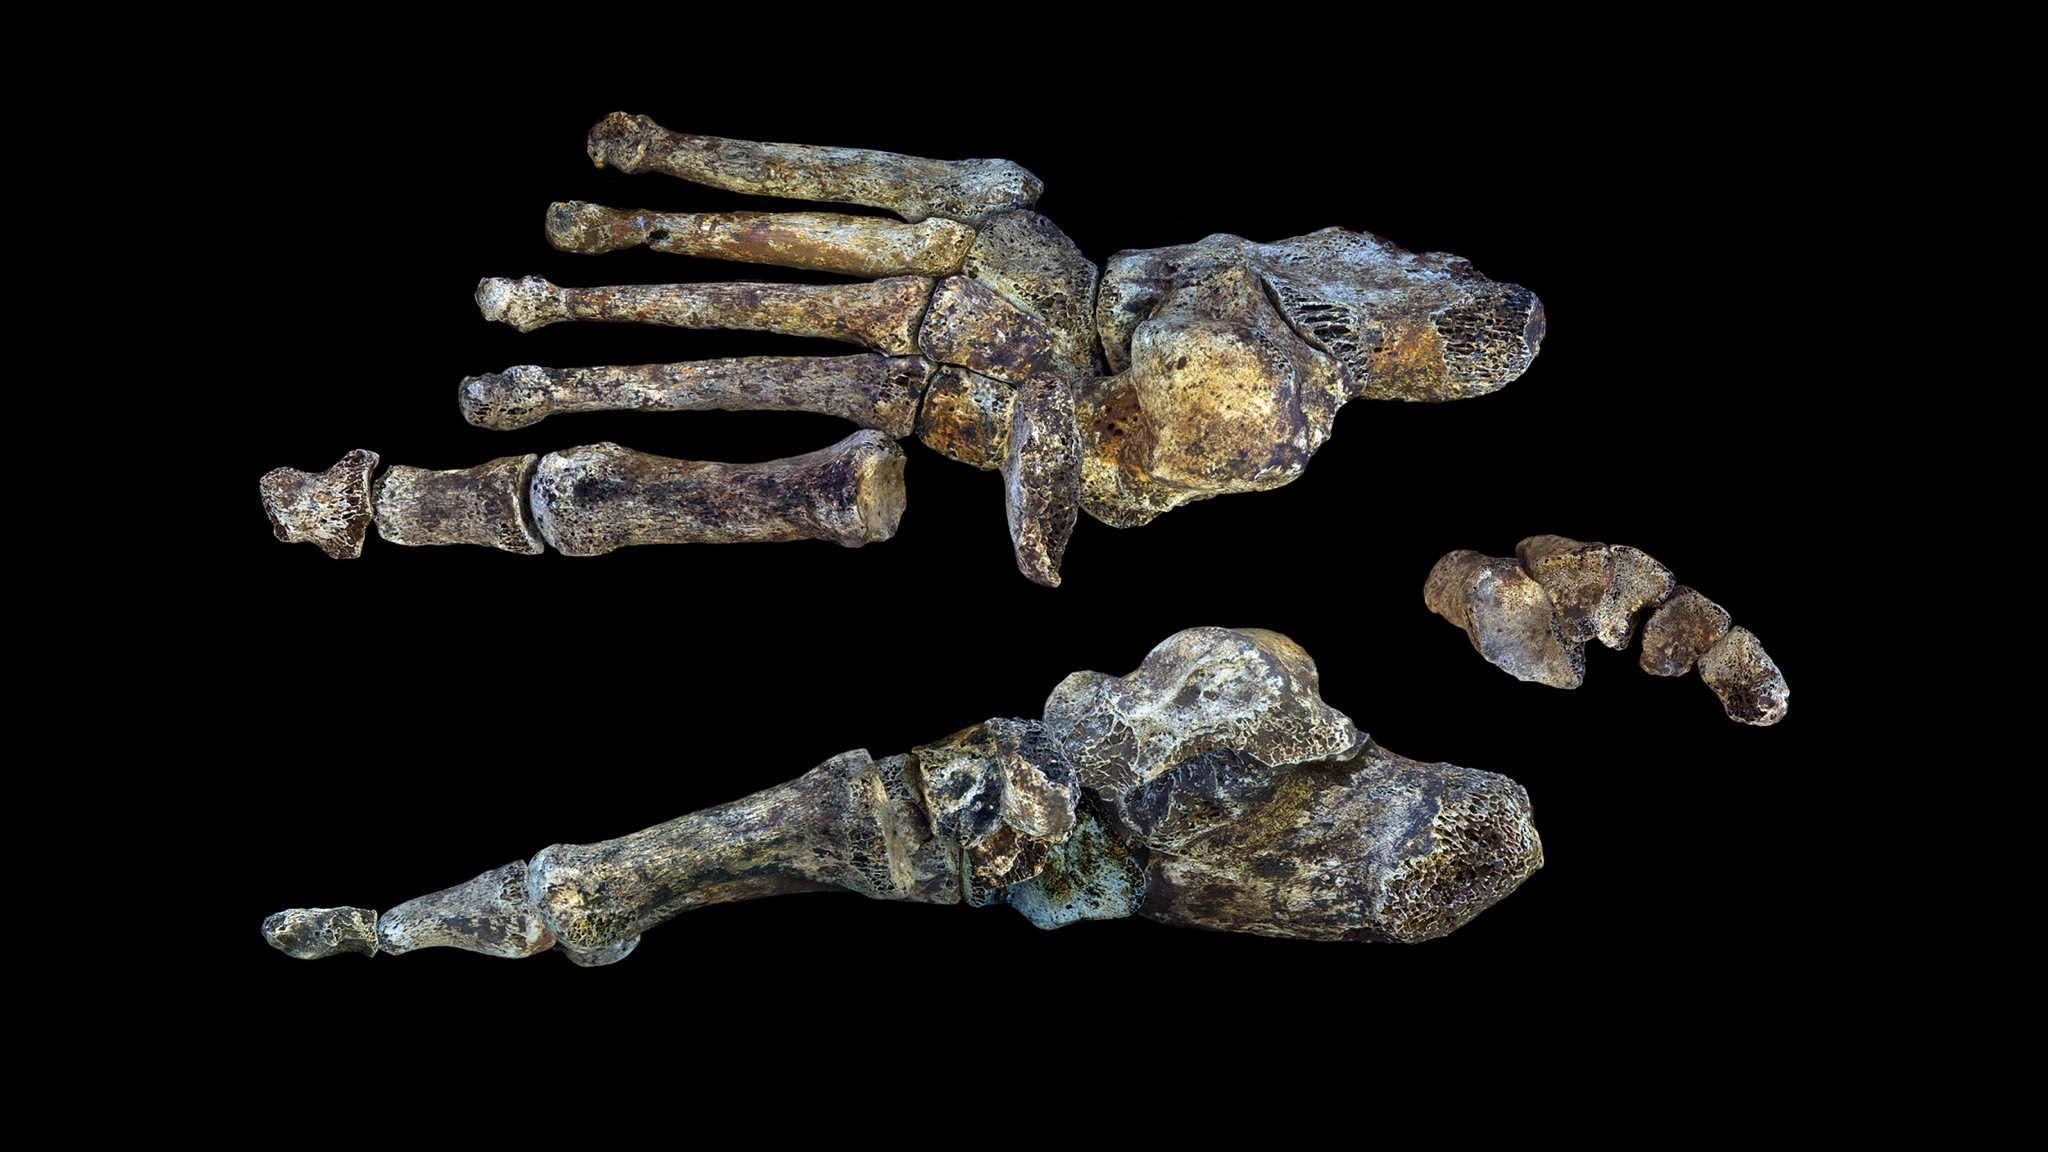 06-homo-naledi-foot-figure-peter-schmid-cc-by